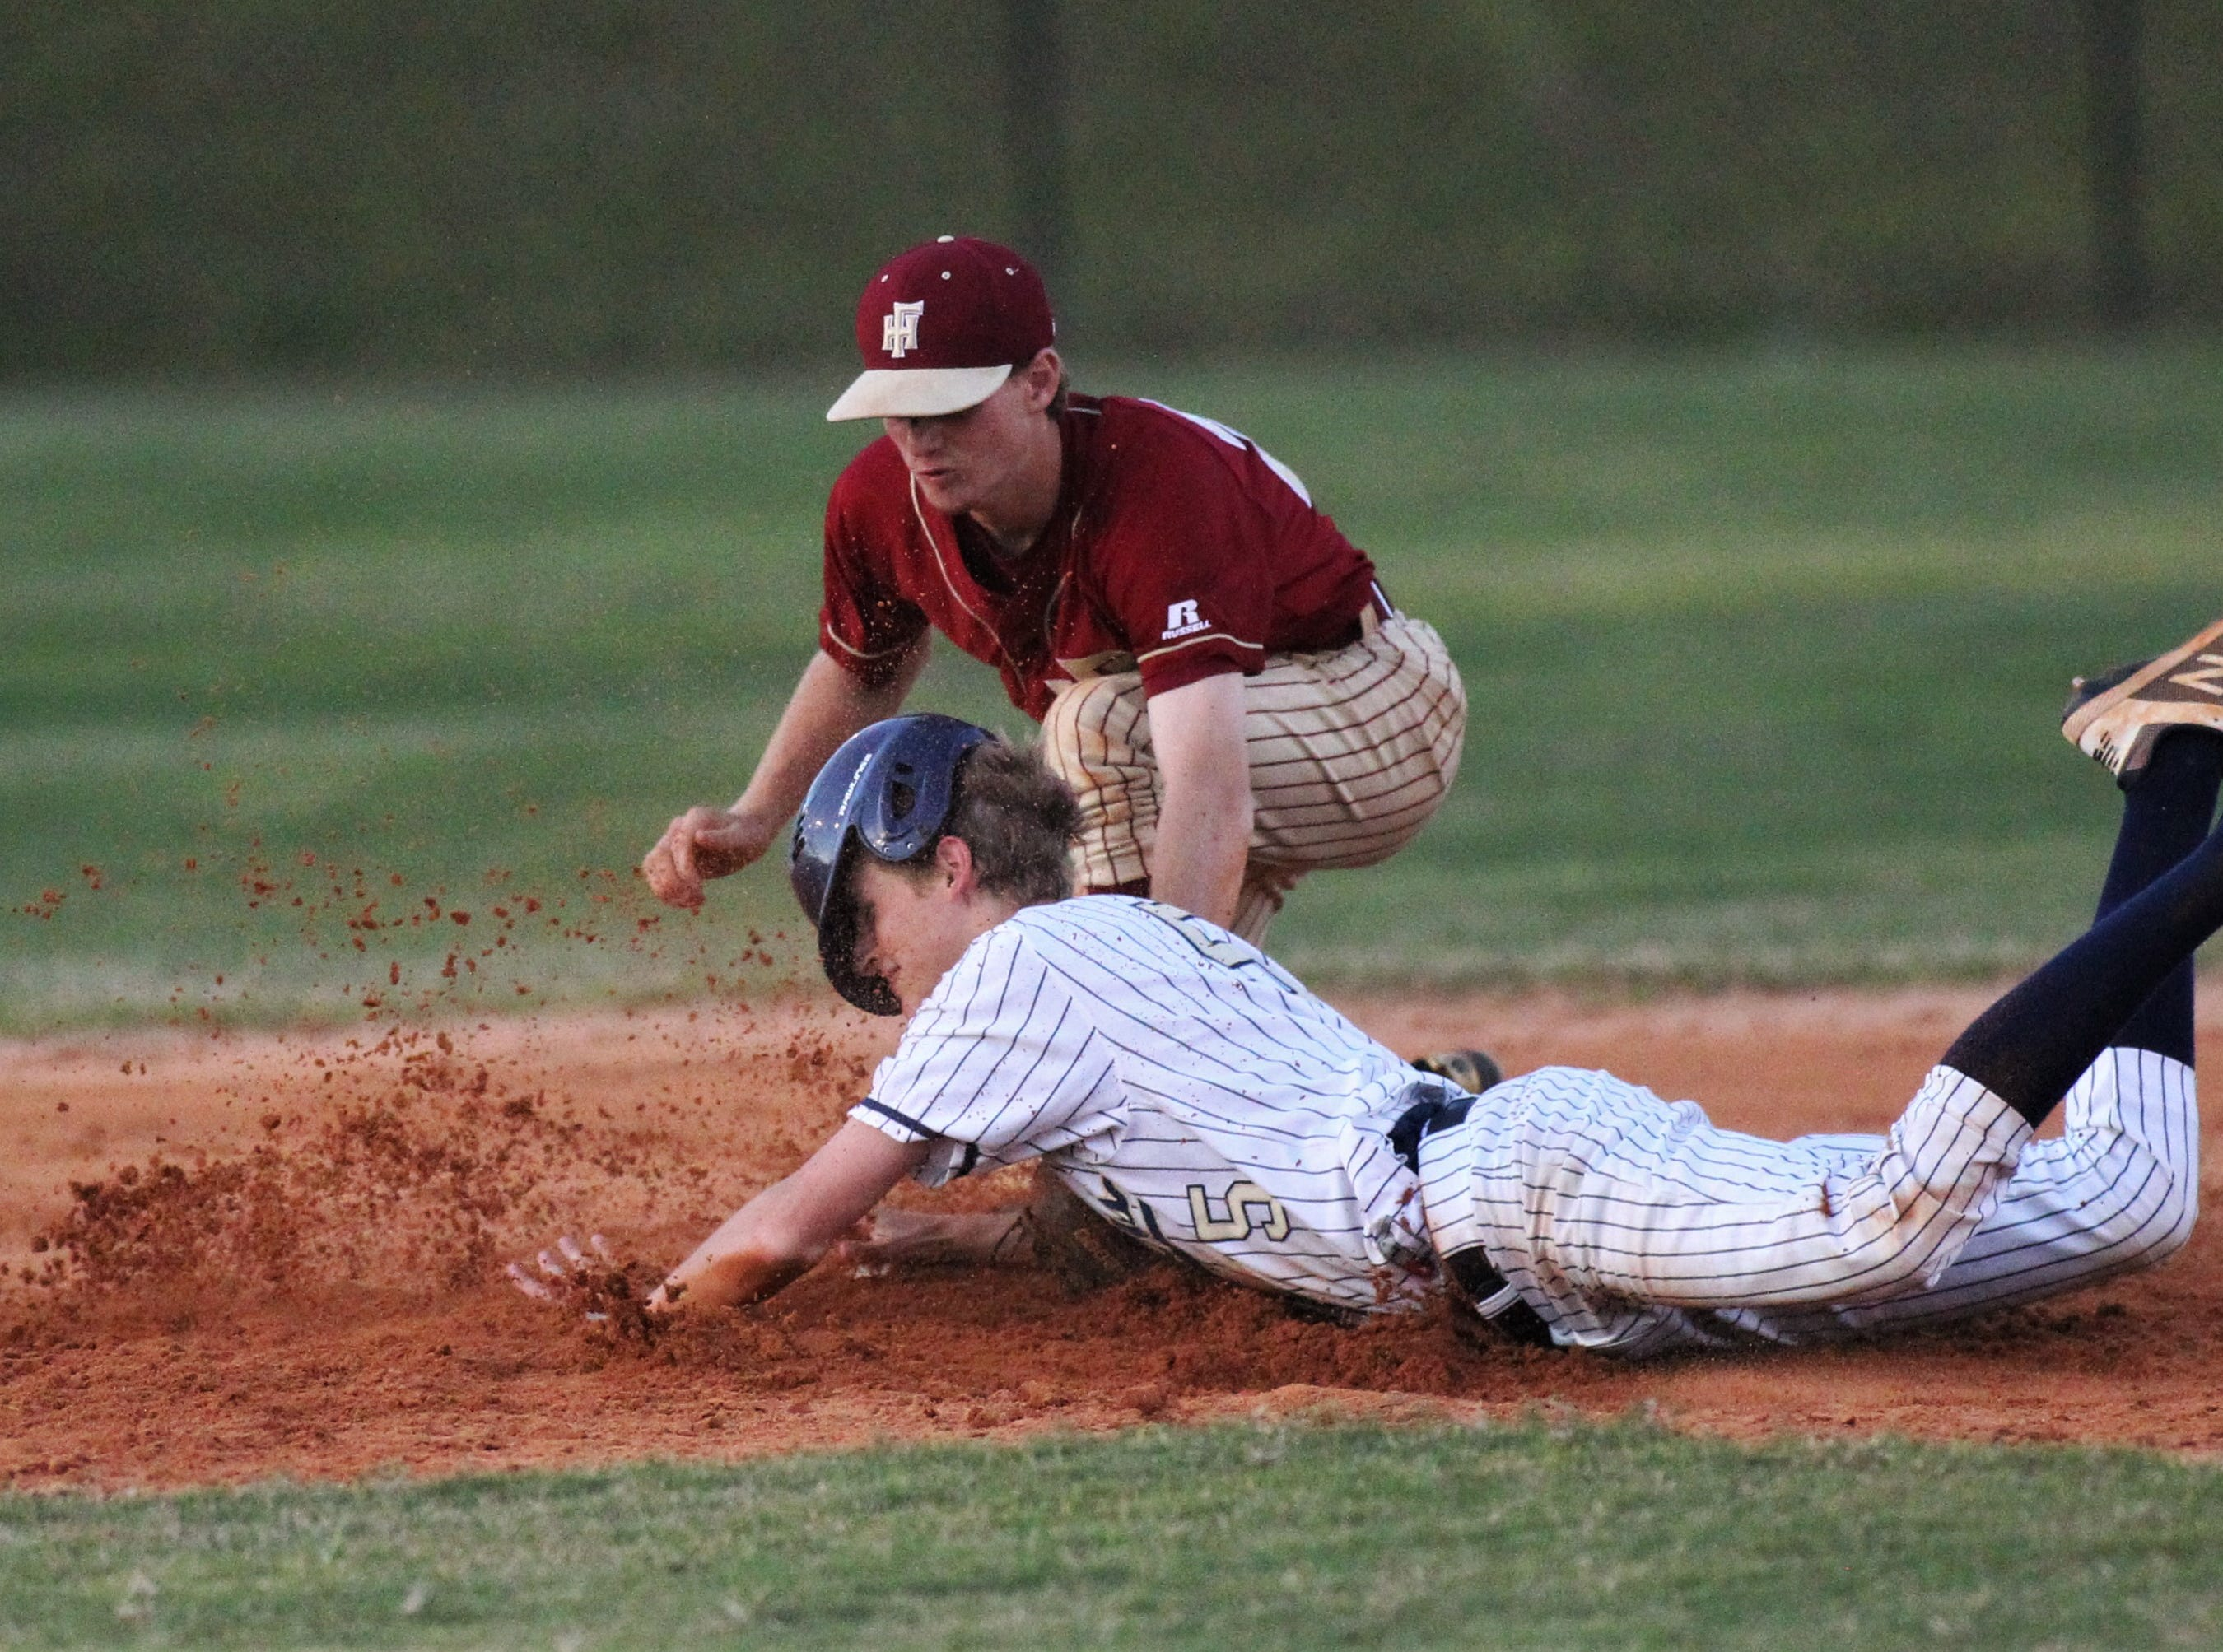 St. John Paul II junior Alex Ware is tagged out at second base by Florida High second baseman A.J. Thorp as Florida High won 11-3 on the road at St. John Paul II on Tuesday, April 3, 2010.